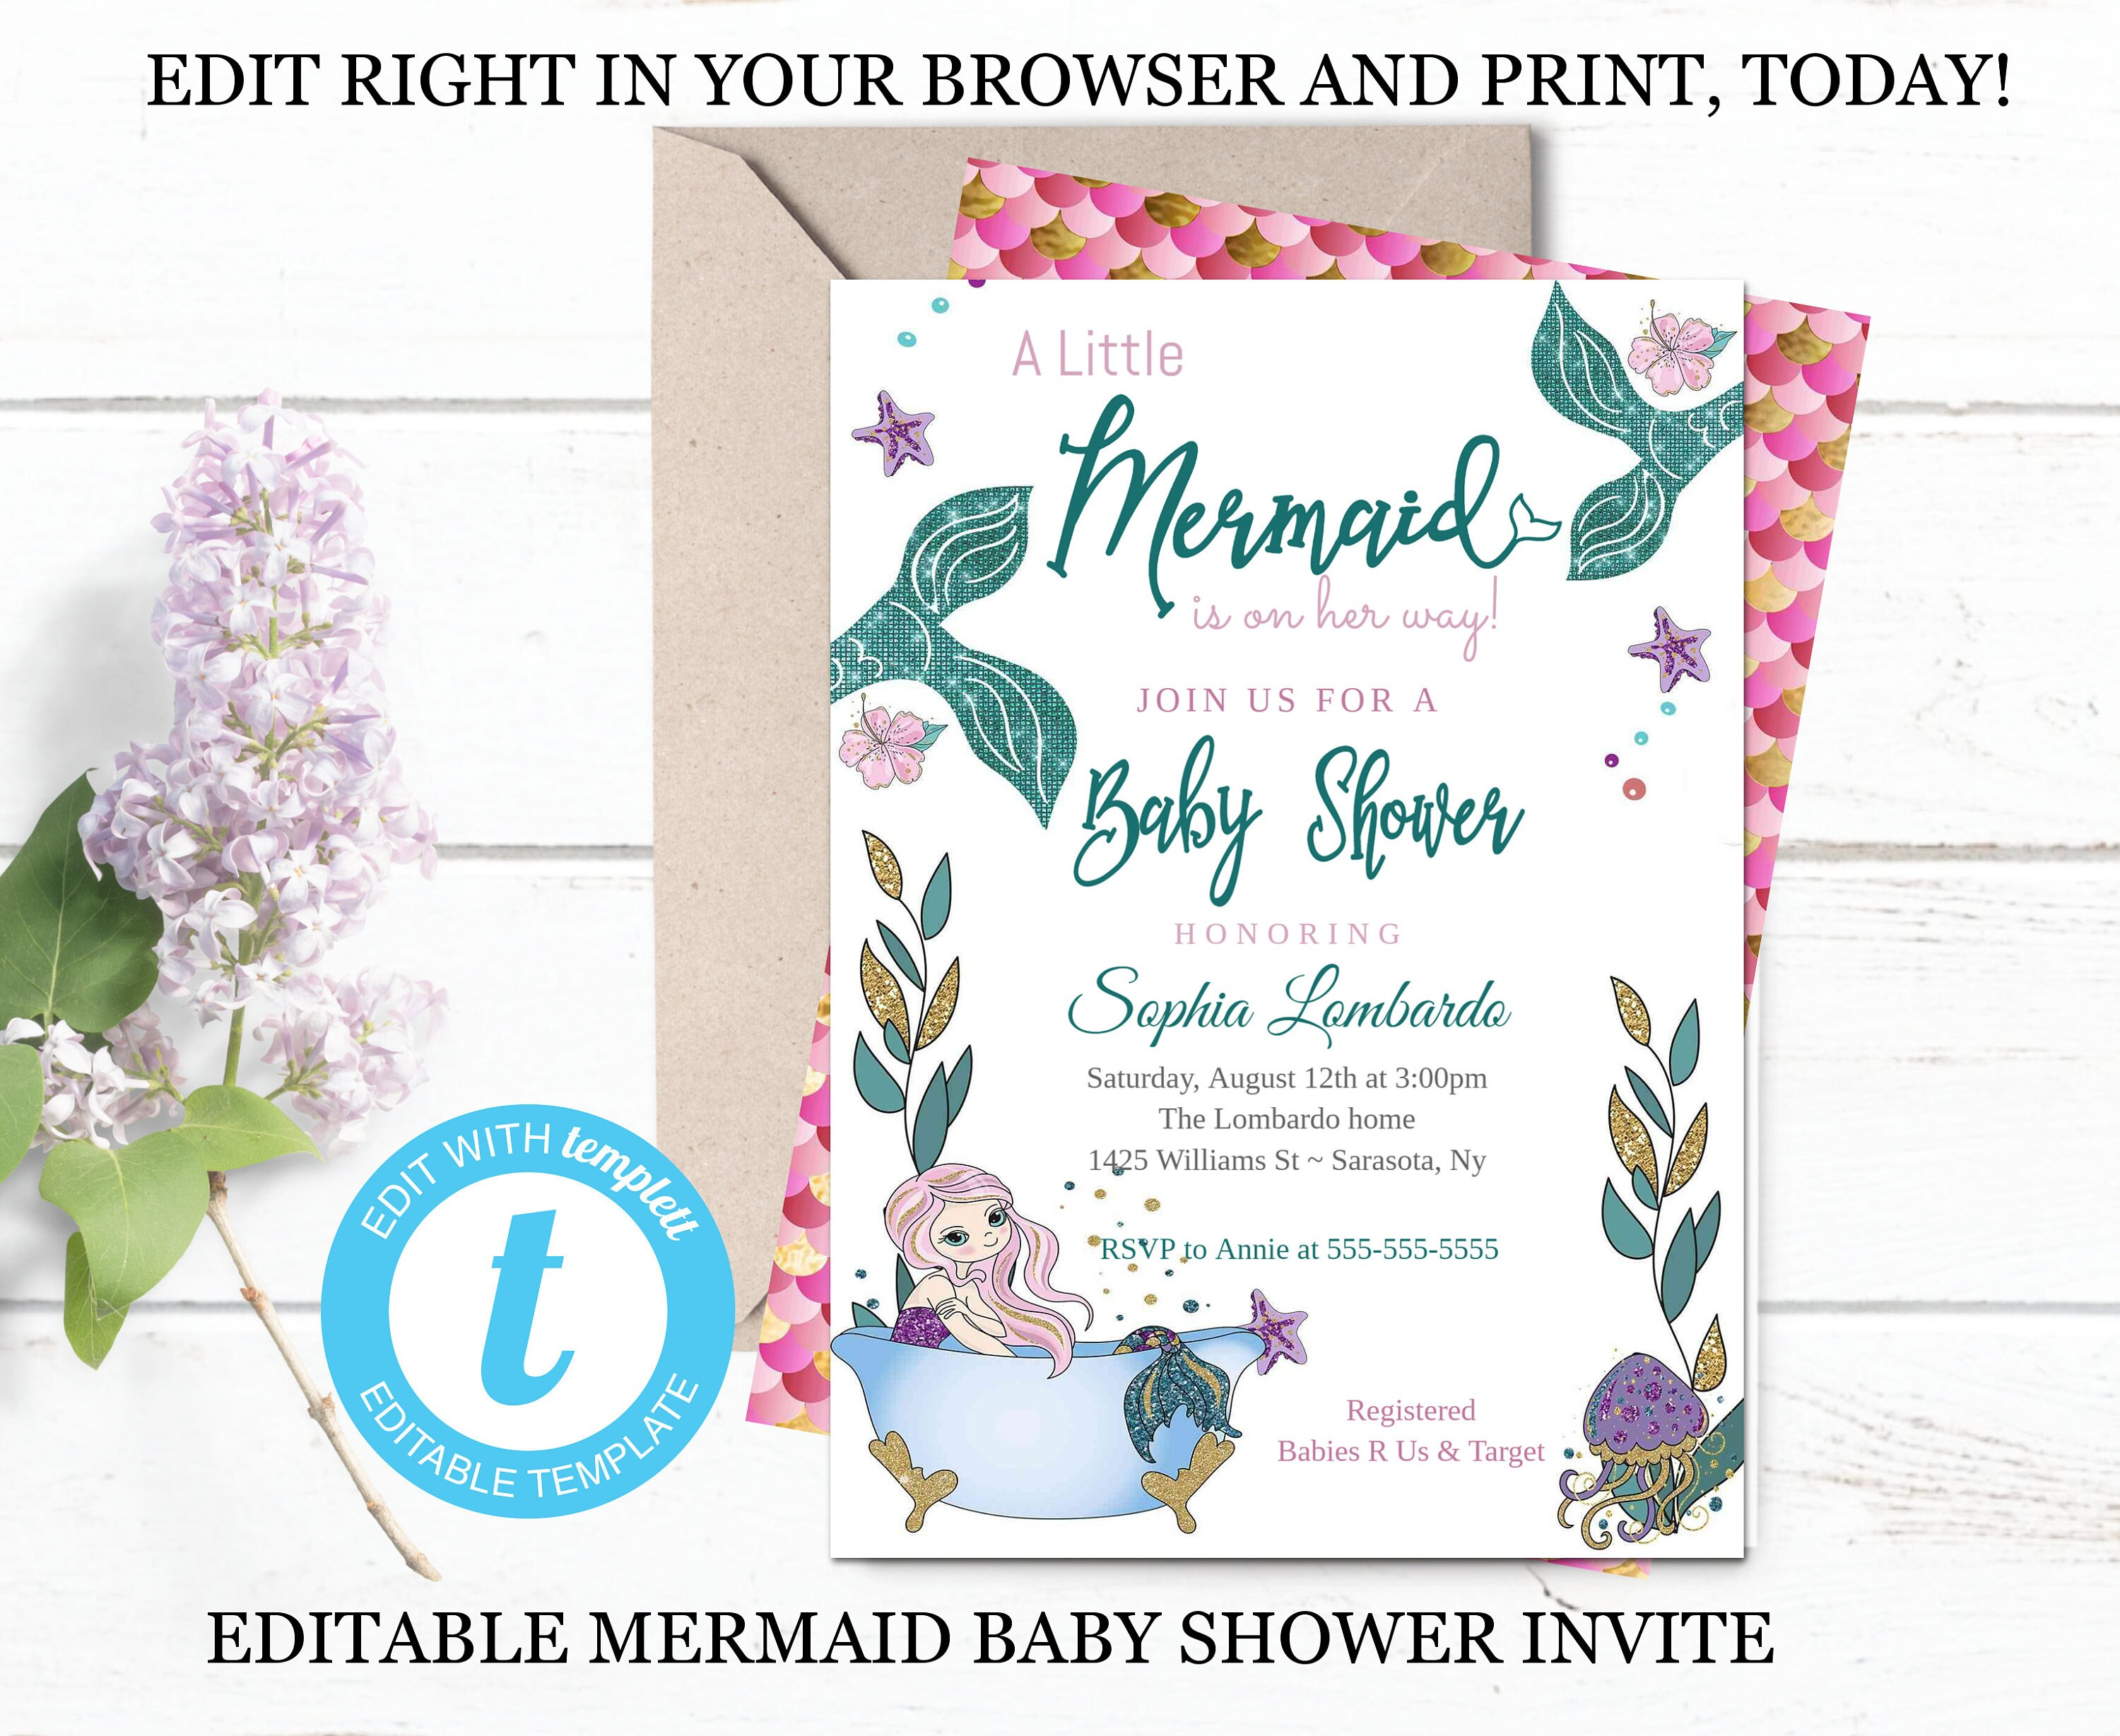 Mermaid Baby Shower Invitation Template Glitter Mermaid Invite Etsy